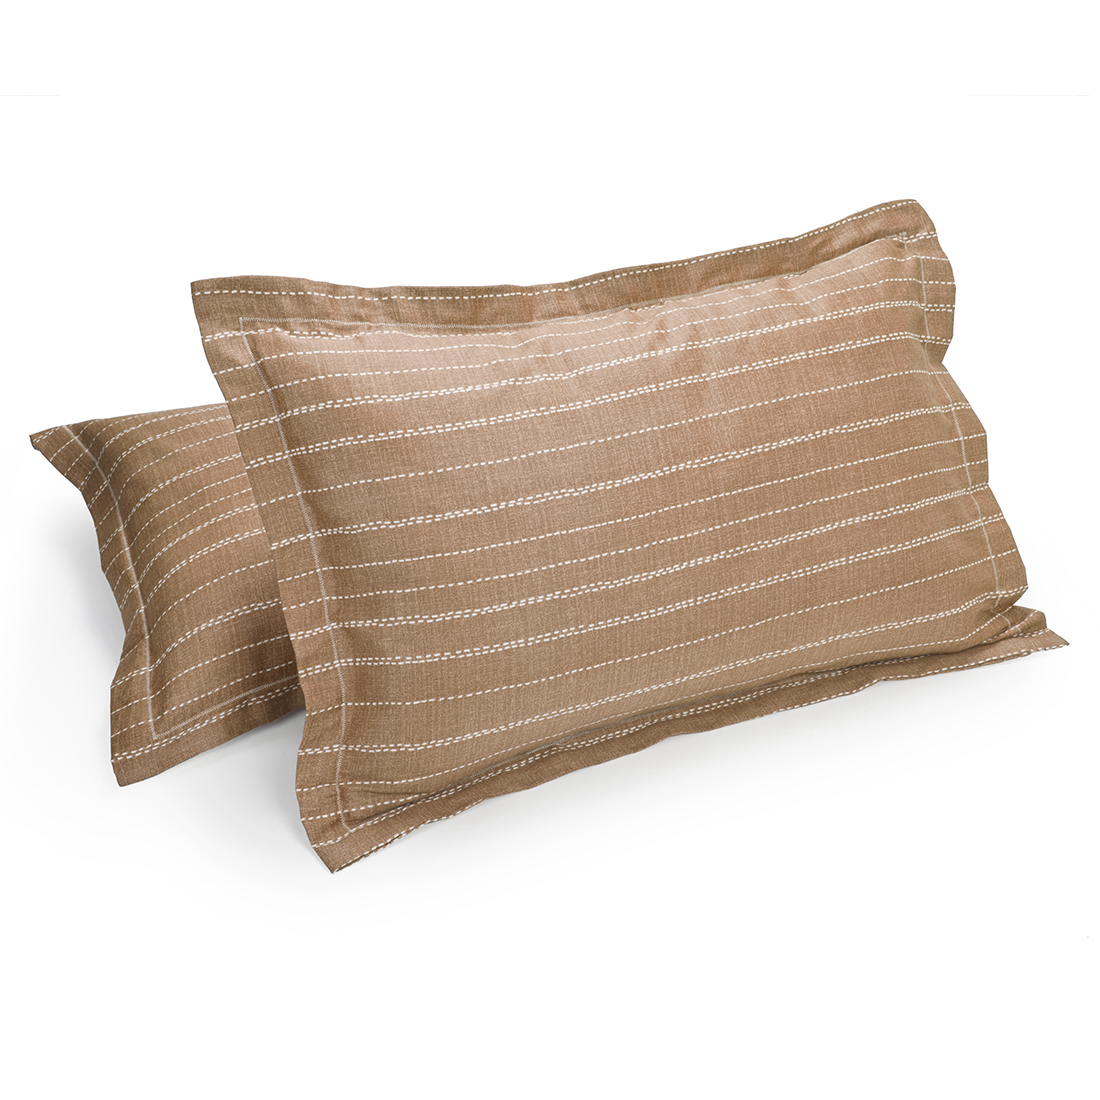 Set of 2 Pillow Cover Amour Texture Dark Beige Cotton Pillow Covers in Cotton Colour by Living Essence